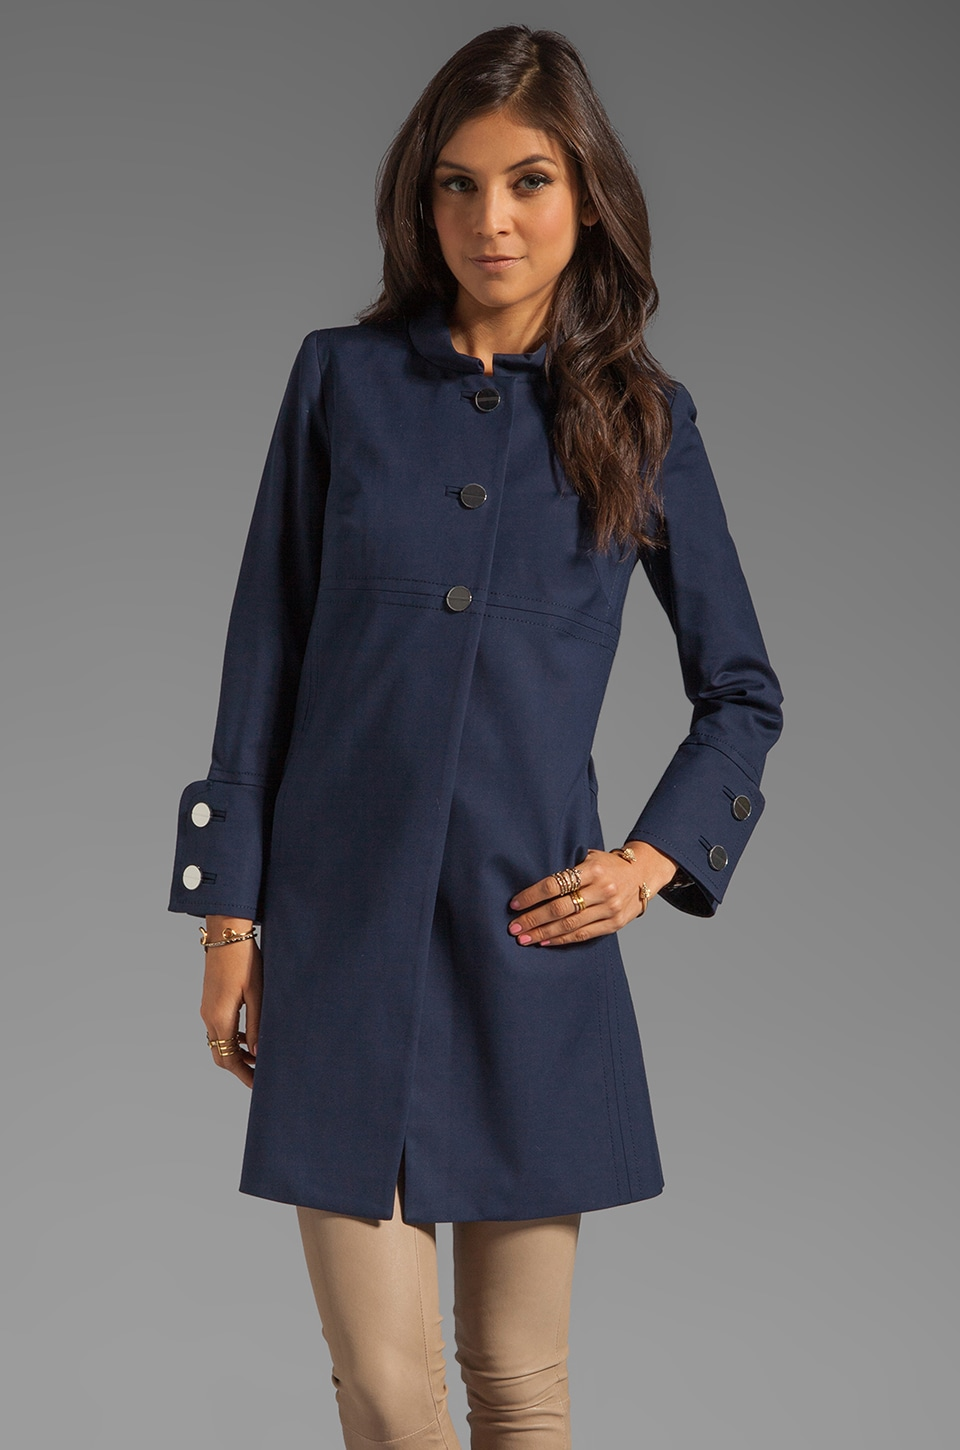 MILLY Fabulous Rowan Day Coat in Navy